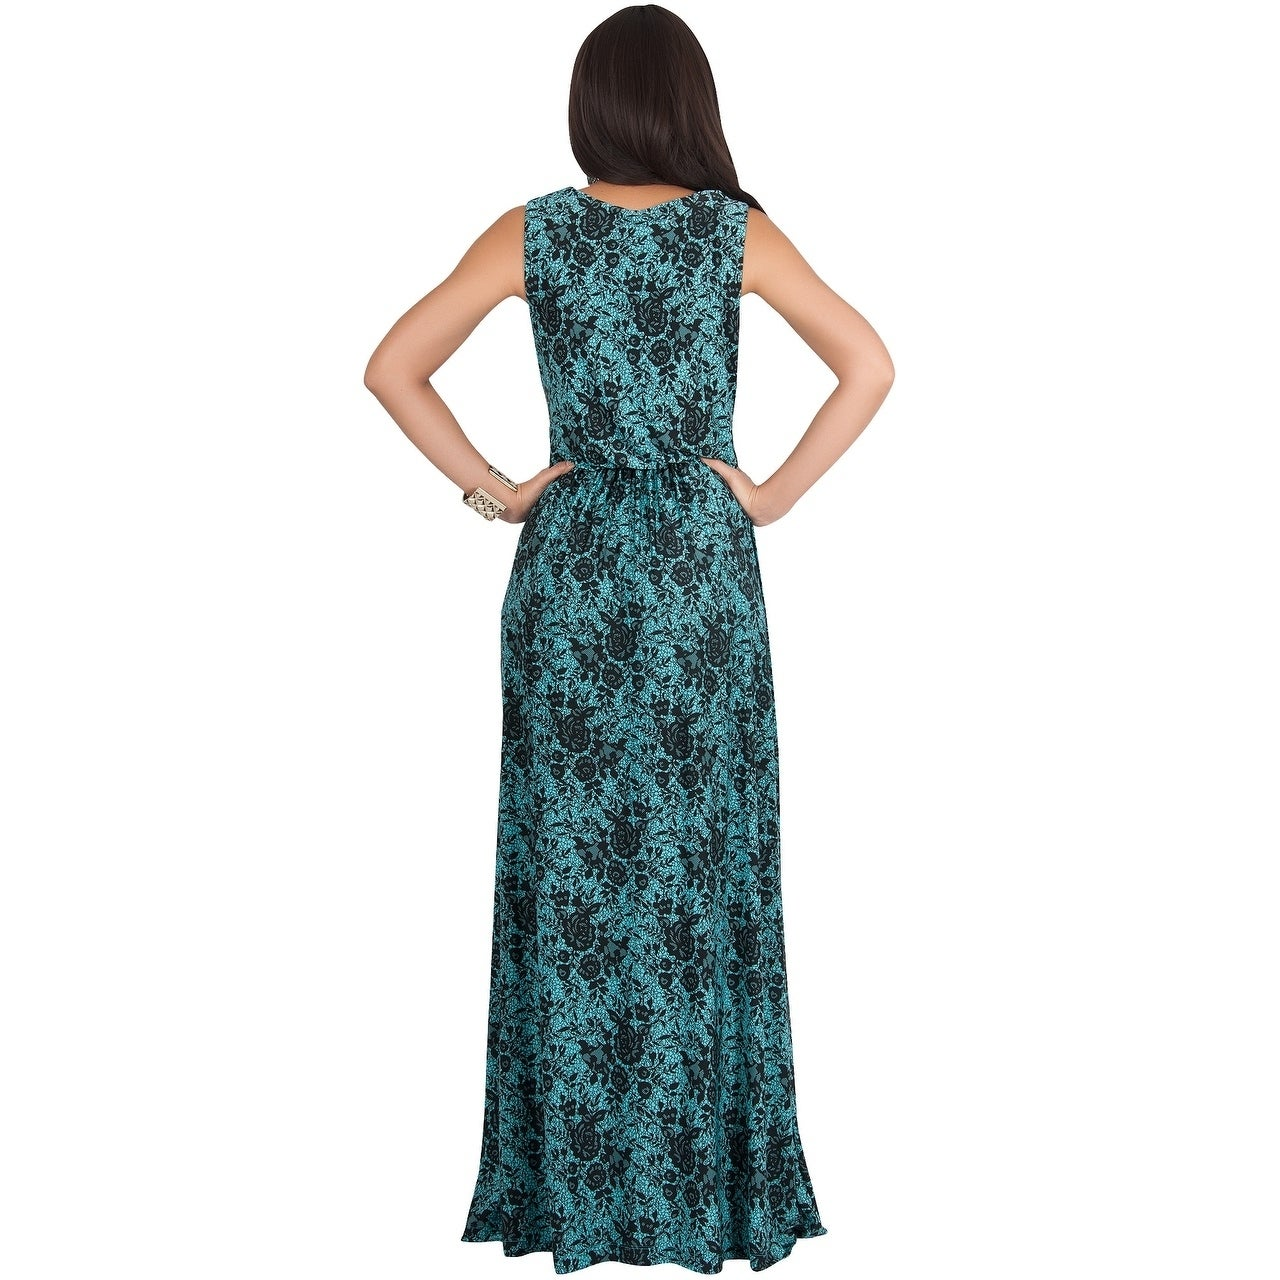 78405cad0c Shop KOH KOH Womens Sleeveless Lace Floral Print Semi Formal Maxi Dress -  Free Shipping On Orders Over  45 - Overstock - 22363793